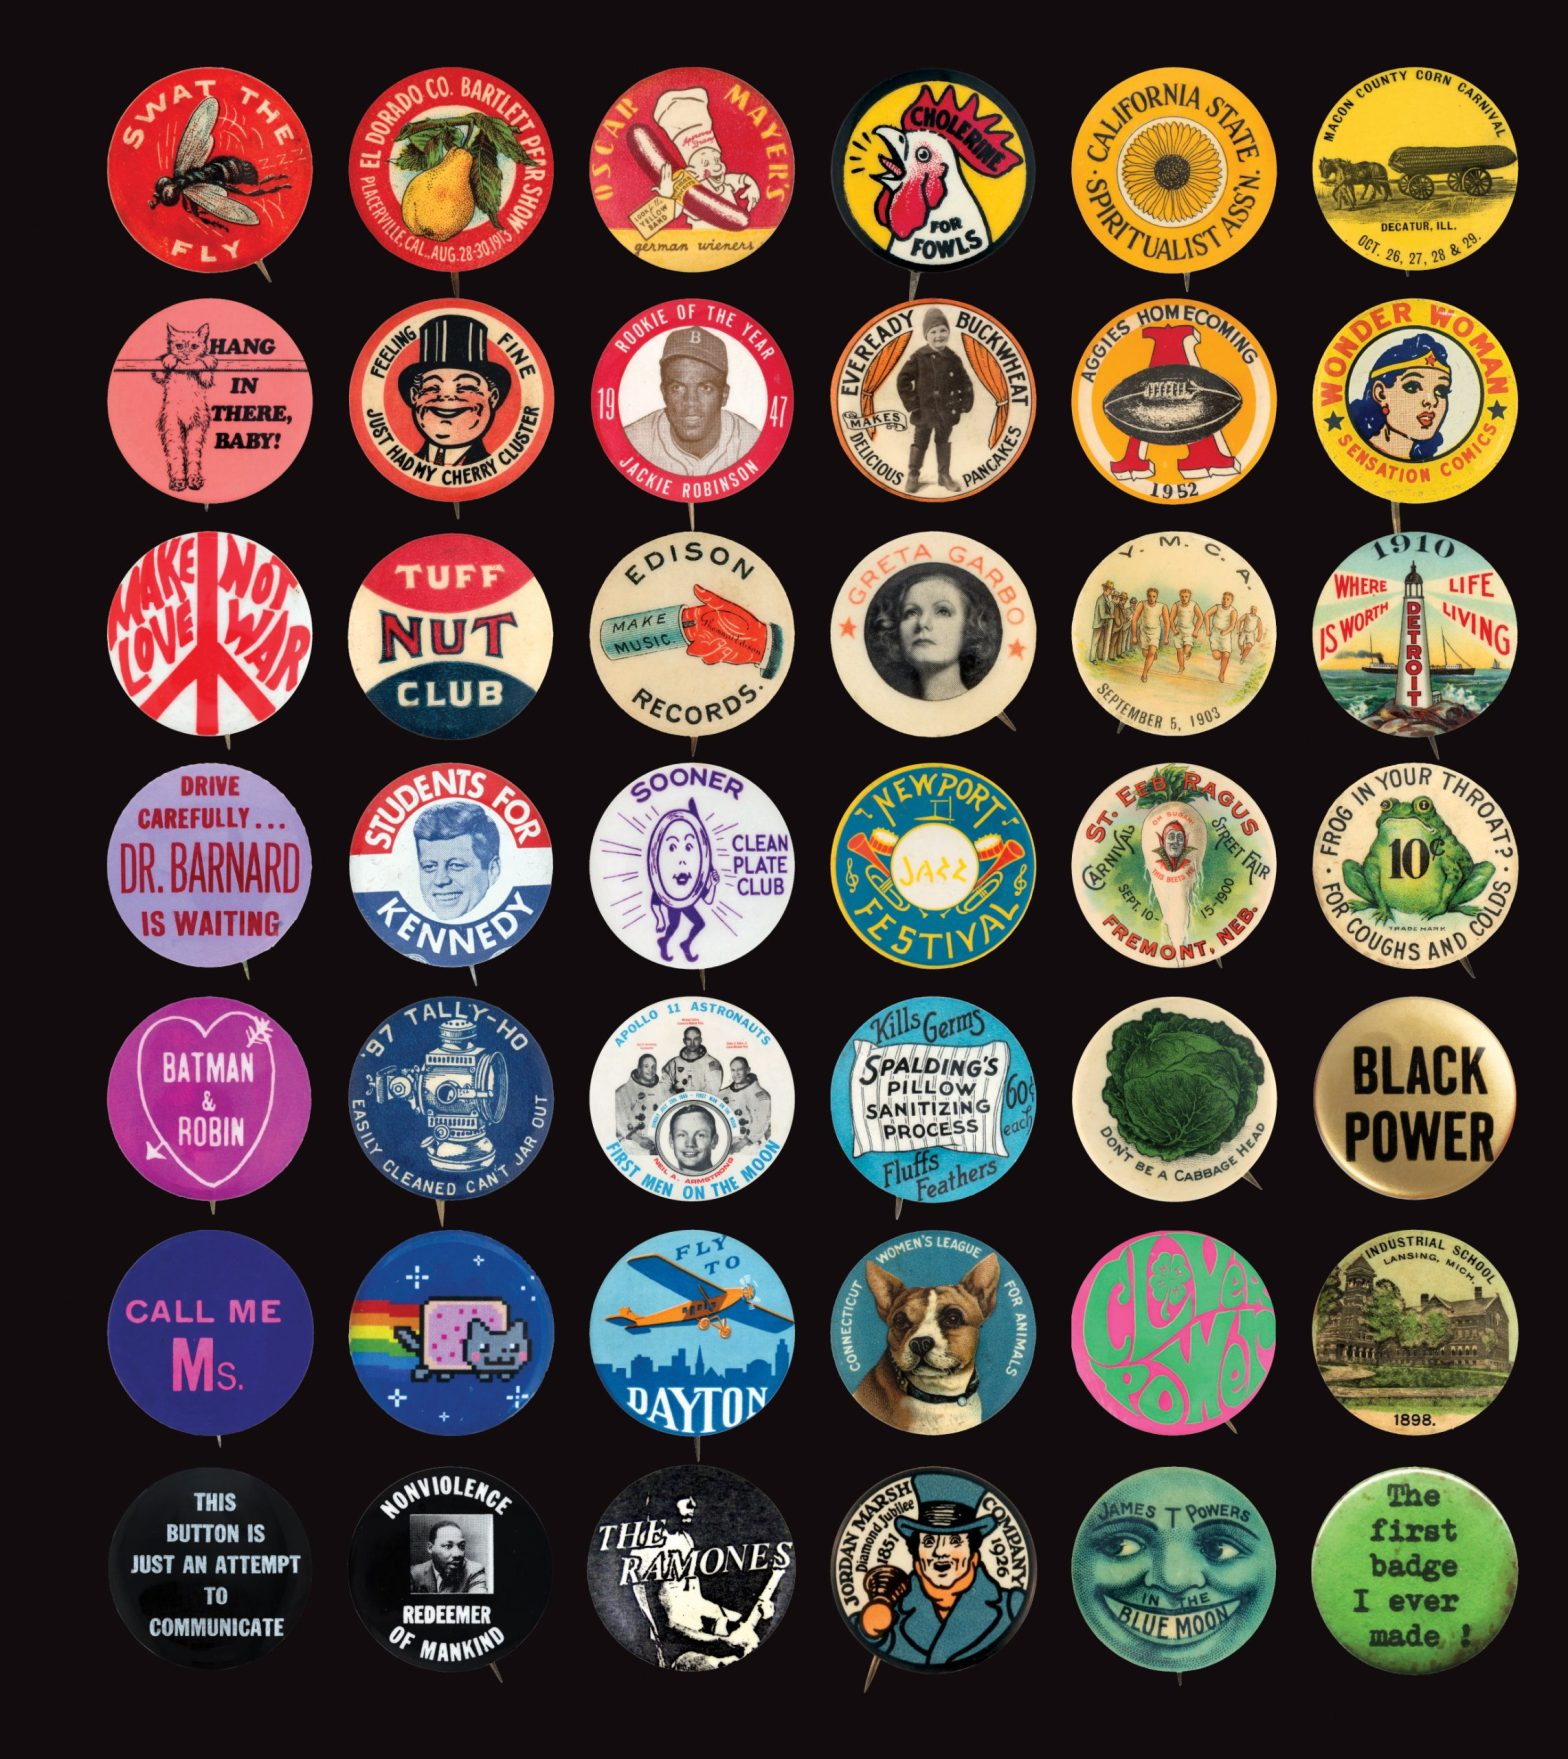 Thumbnail for The Daily Heller: Buttonmania!